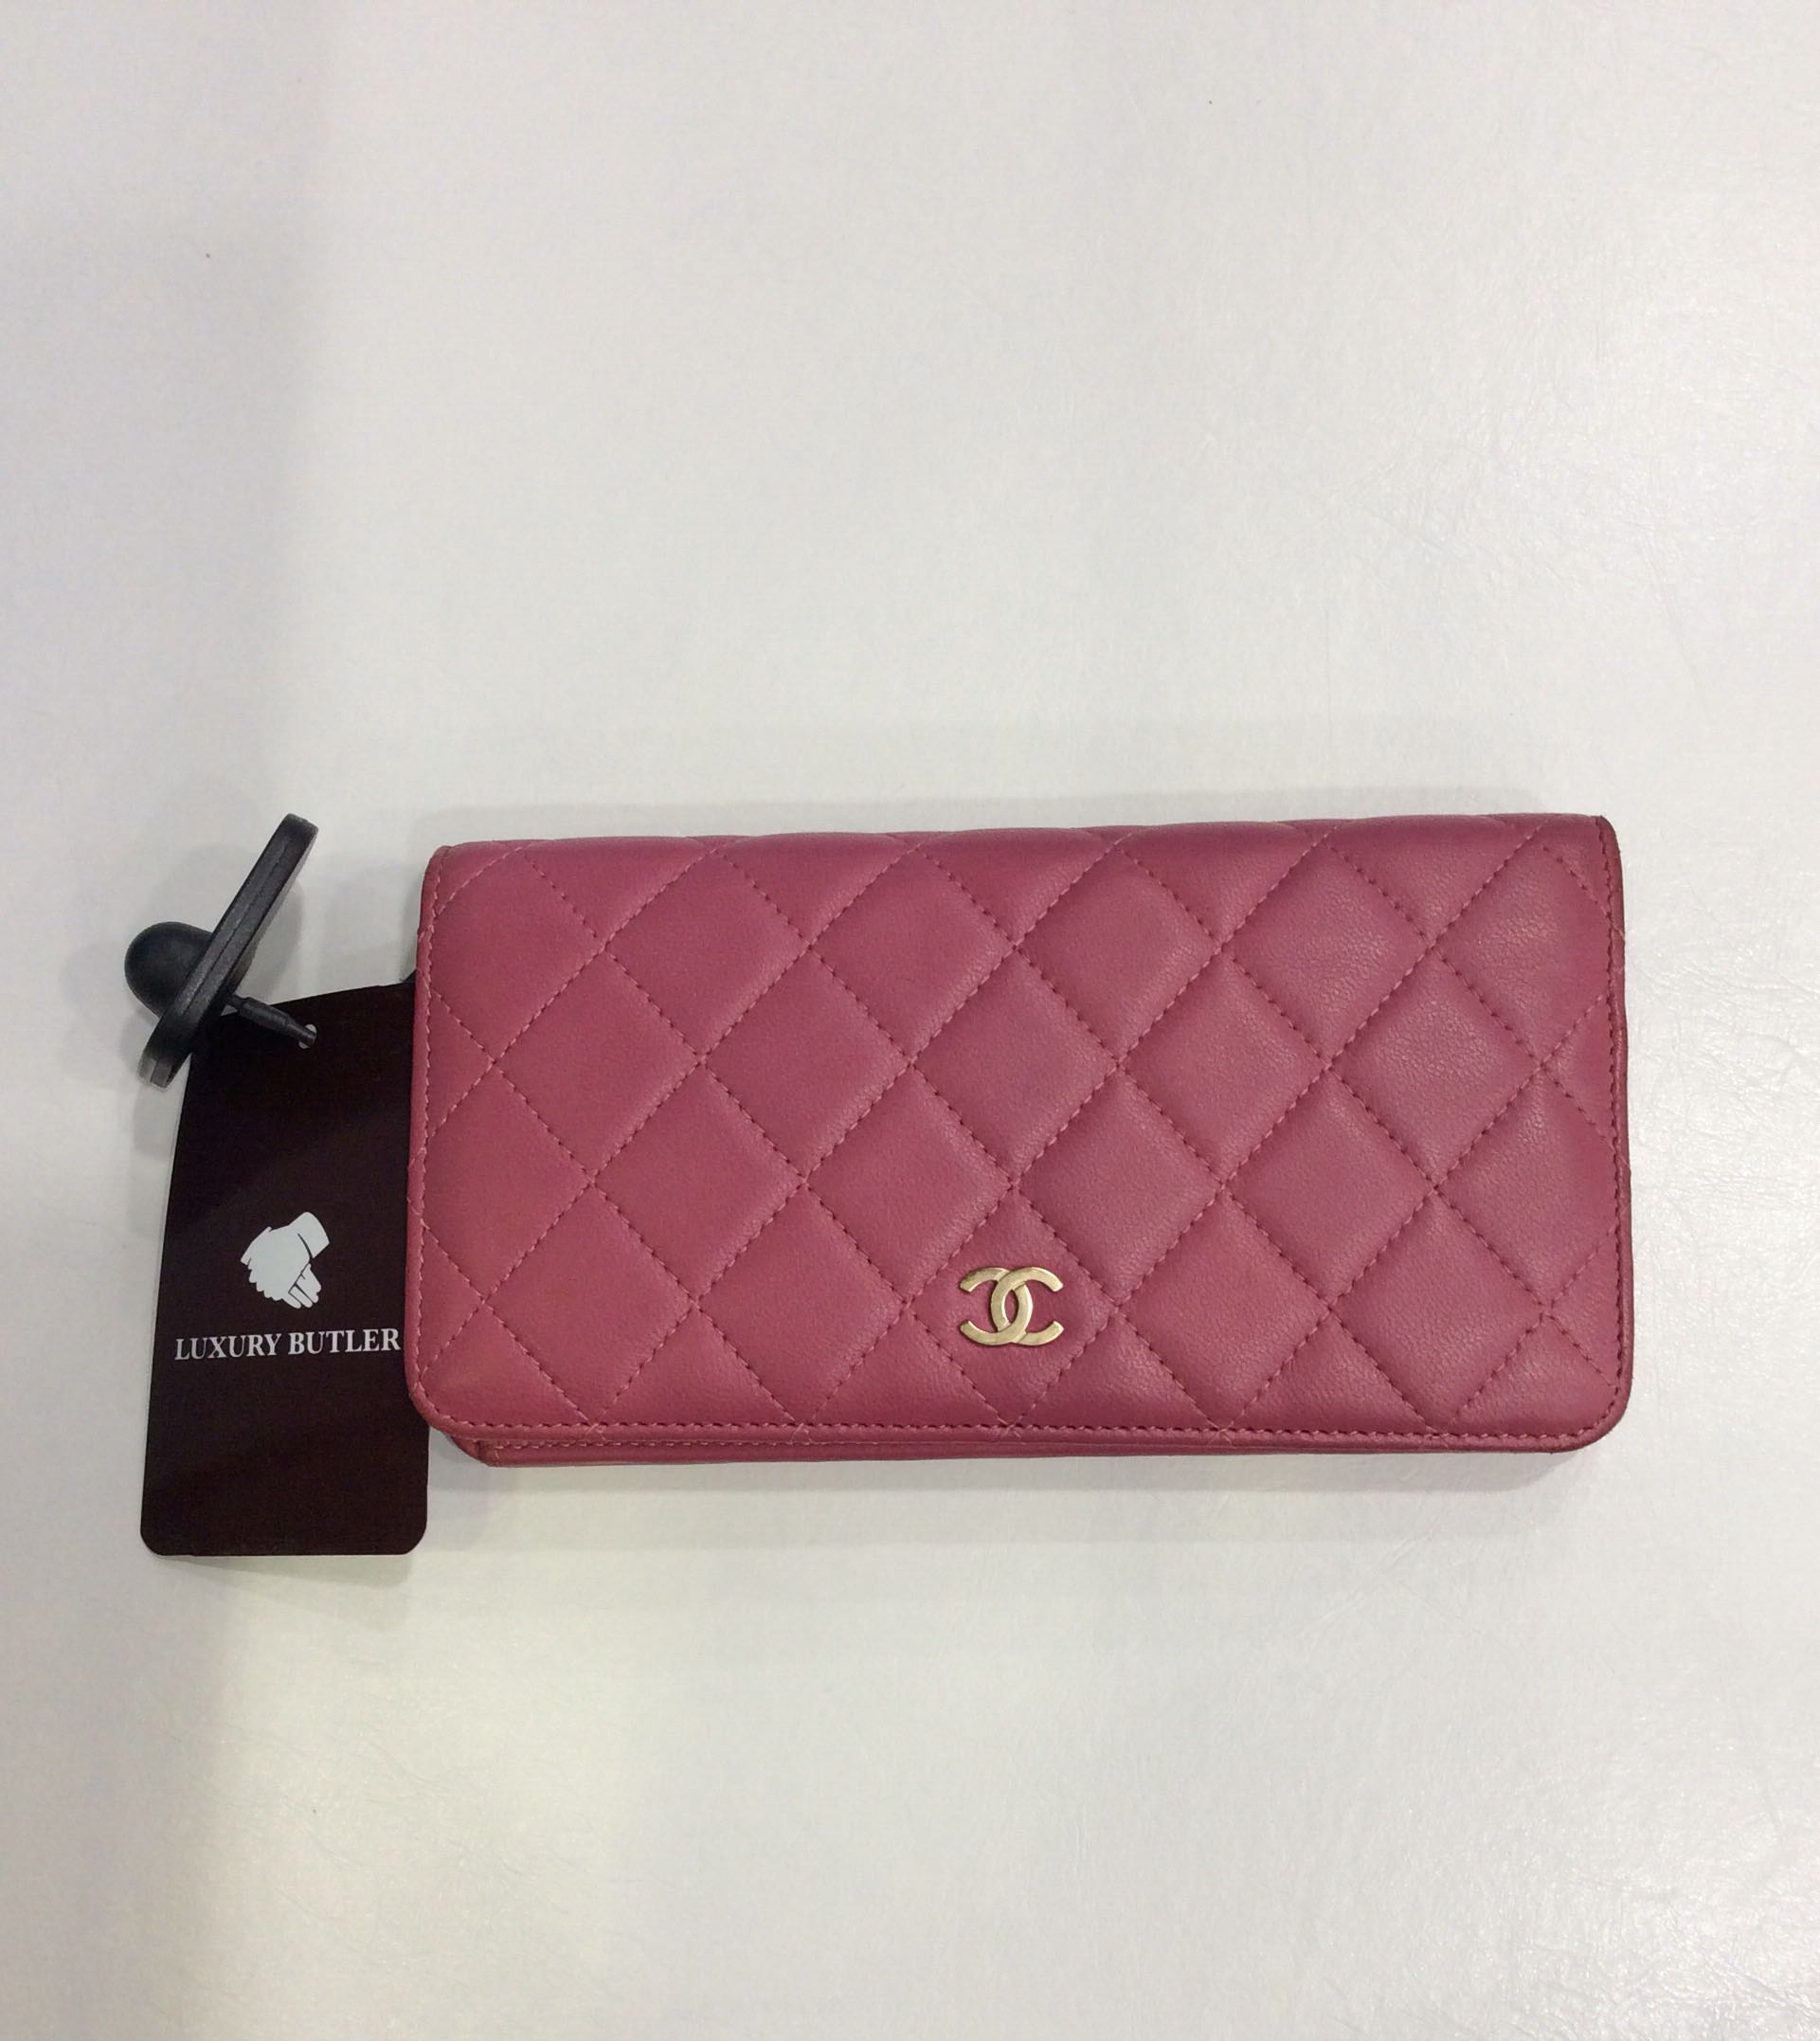 bb6450ace8db Preloved Chanel Wallet, Women's Fashion, Bags & Wallets, Wallets on ...